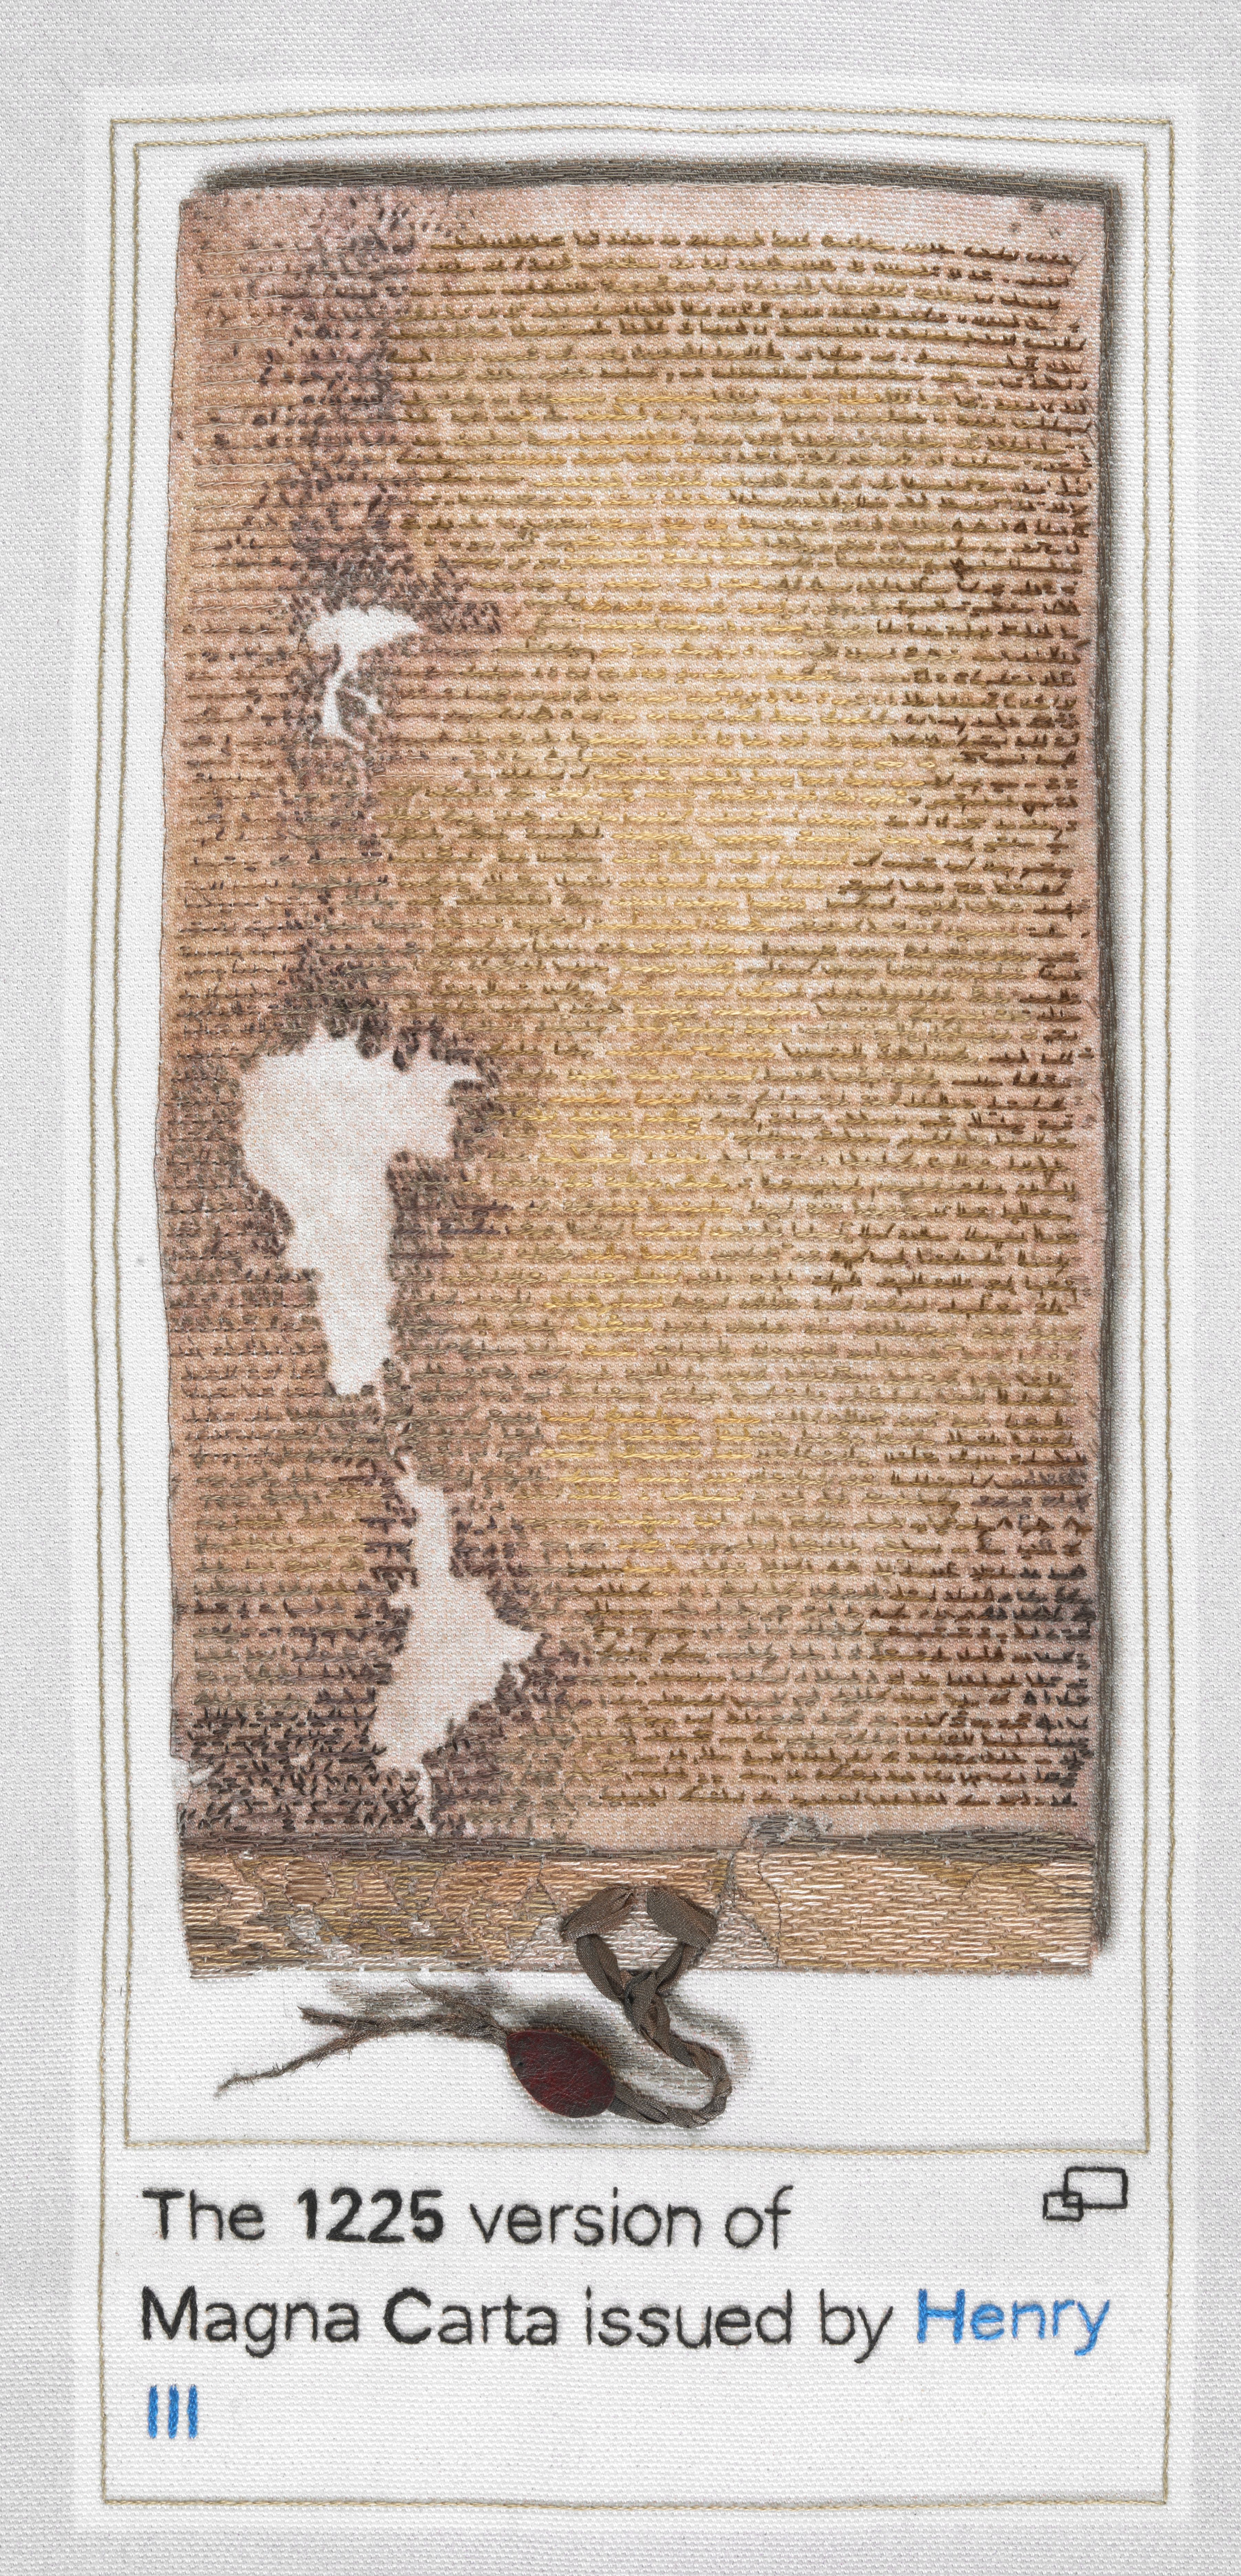 1225 Magna Carta issued by Henry III, stitched by Ann Carrick and Elaine Dunn, Embroiderers' Guild (North East Region). Part of Cornelia Parker's Magna Carta (An Embroidery) at the British Library